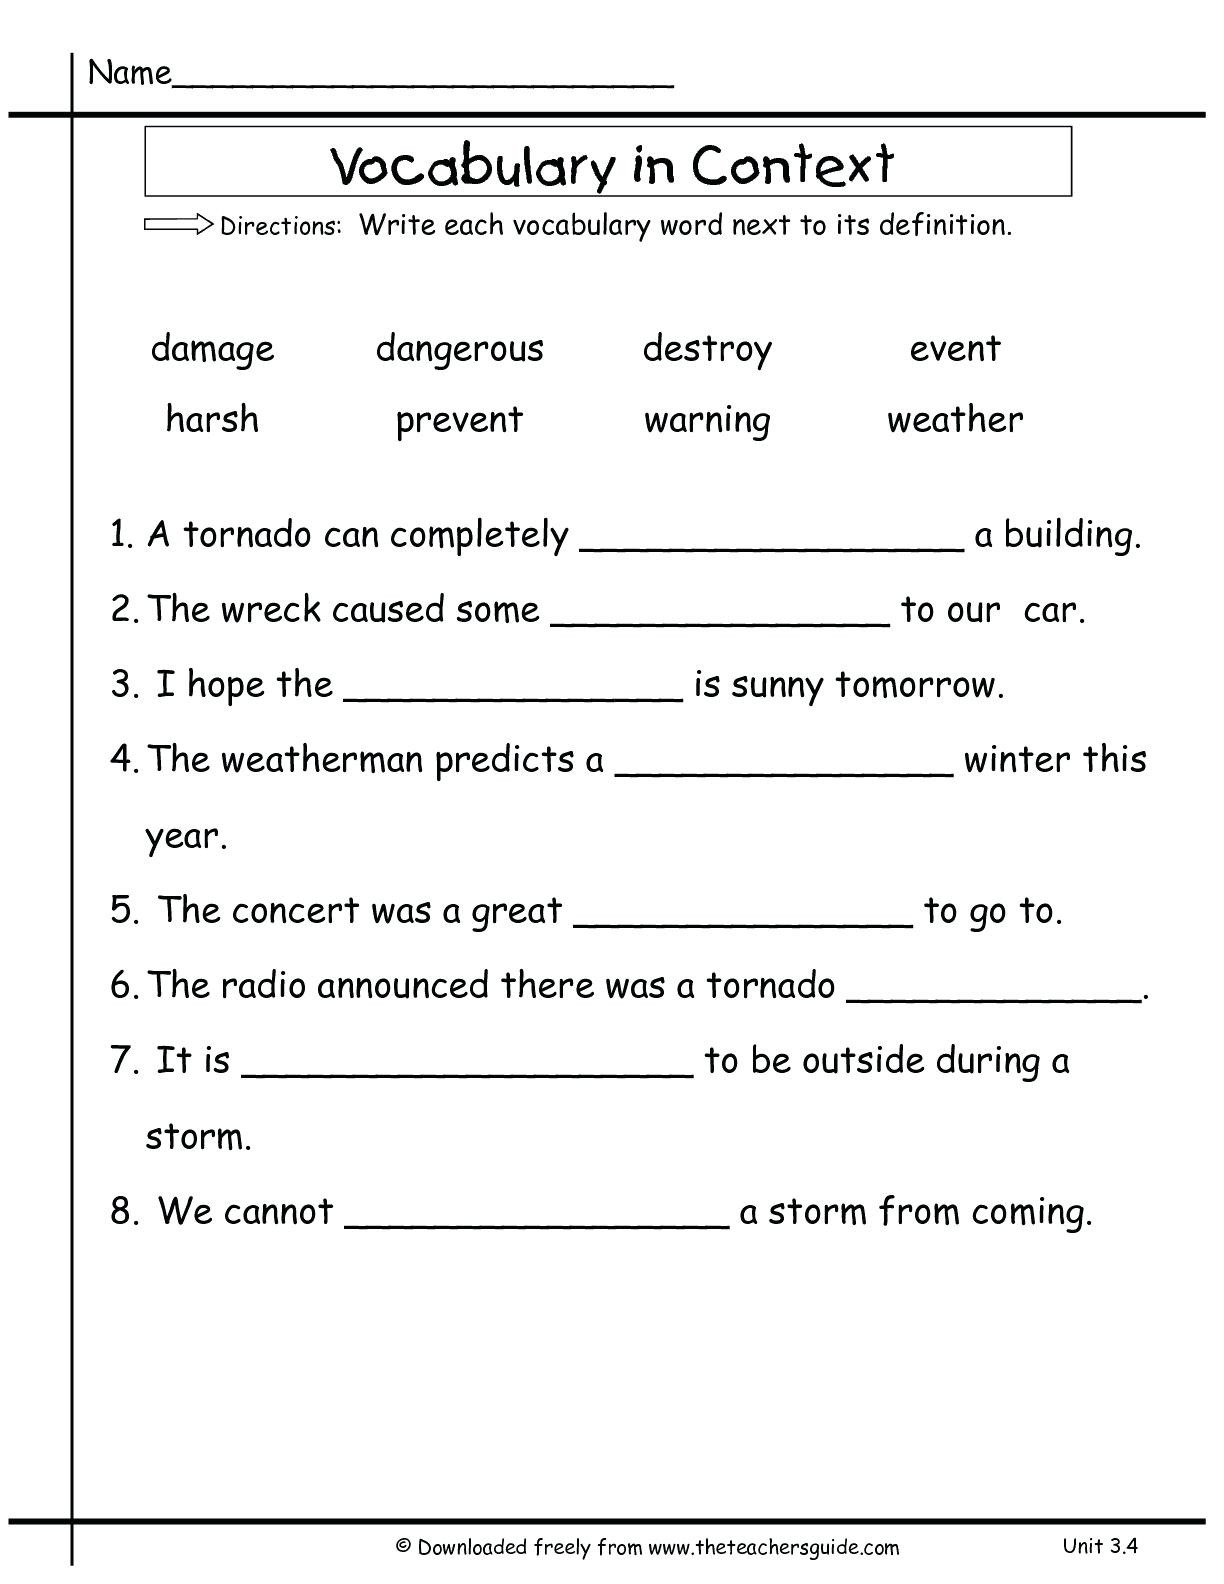 4th Grade Vocabulary Worksheets To Free Math Worksheet For